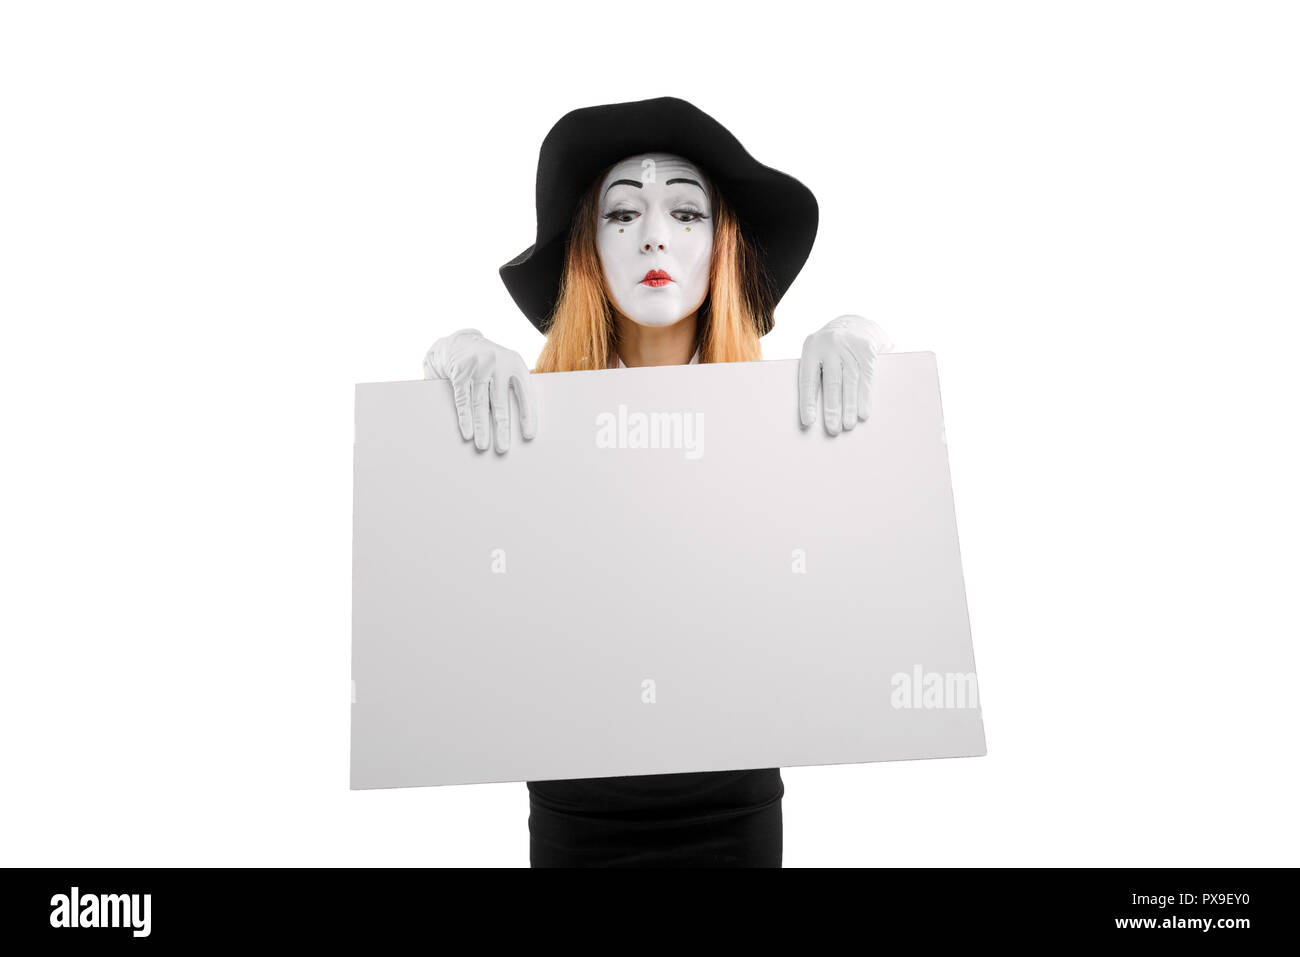 Mime actress with empty board - Stock Image